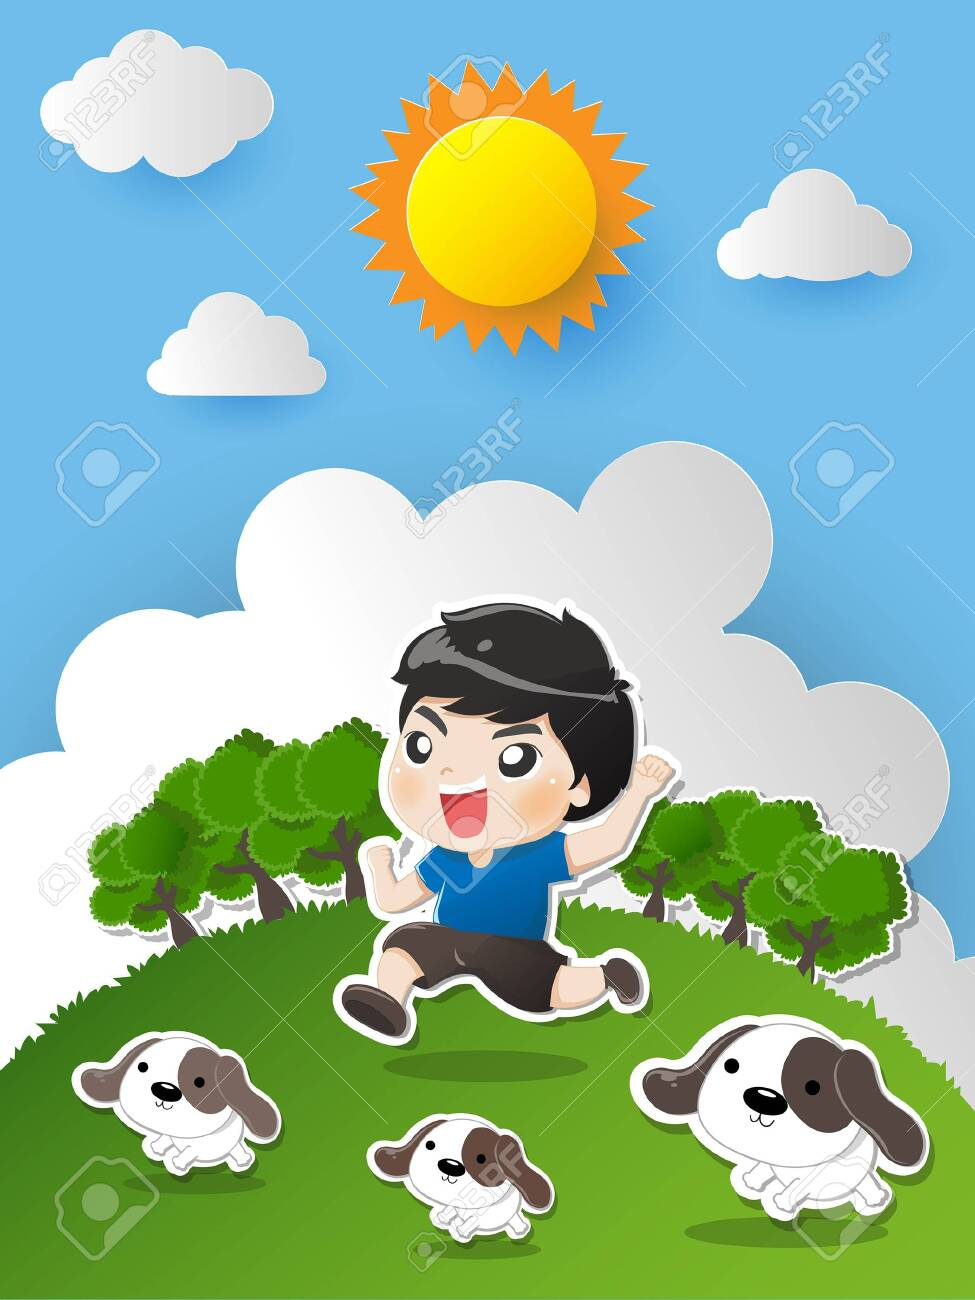 Kid running in the garden with dogs laugh bright and happy withe great day. - 123527556